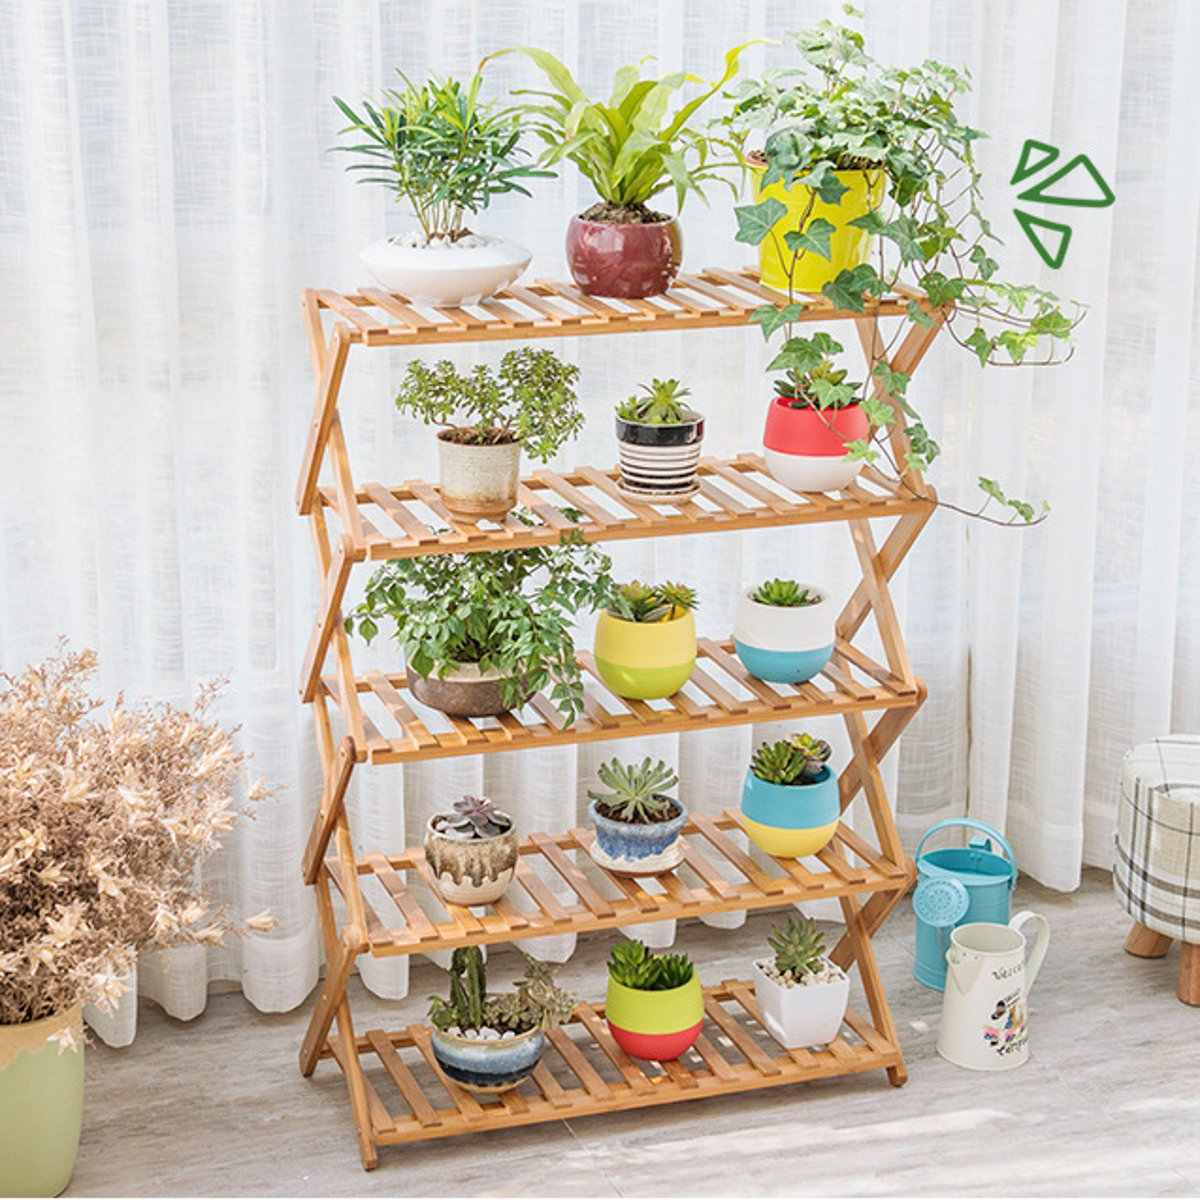 2/3/4/5 Tiers Foldable Flower Pot Plant Stand Planter Flowers Pot Tray Display Rack Shelf Organizer Garden Balcony Decoration